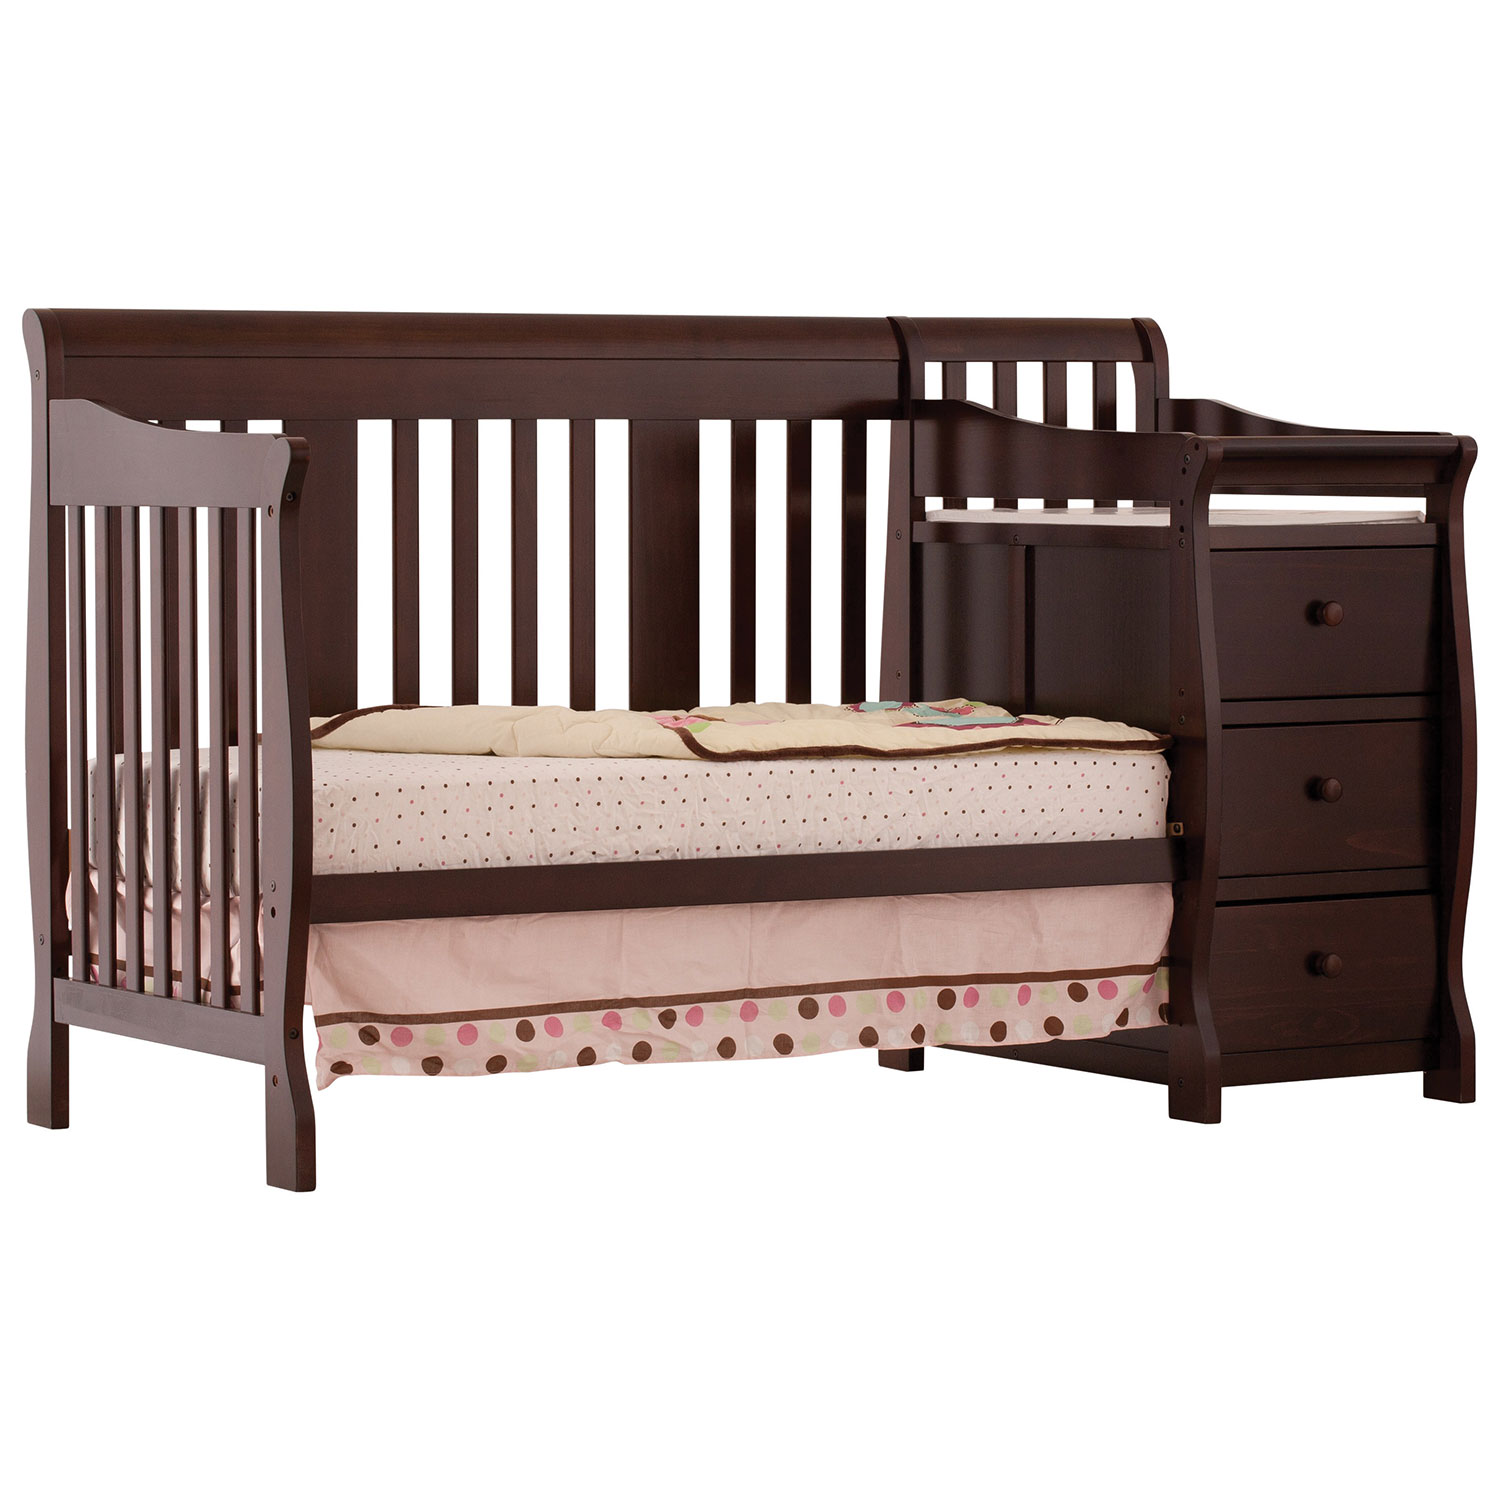 stork craft portofino in fixed side convertible crib changer  - stork craft portofino in fixed side convertible crib changer  espresso baby cribs  best buy canada